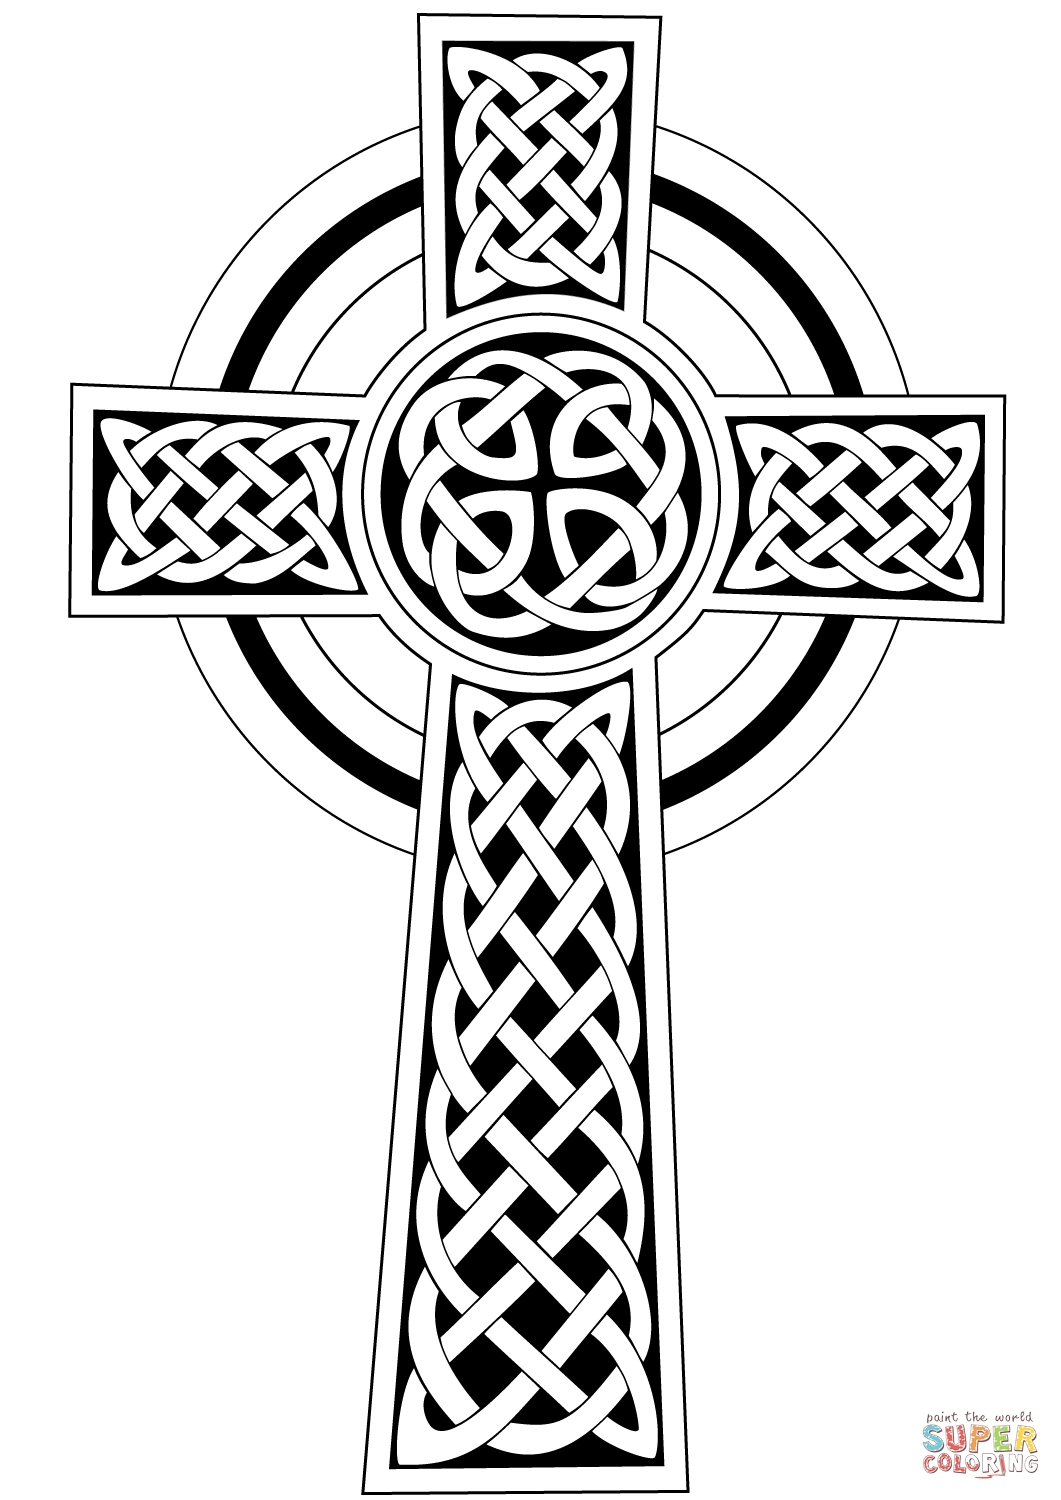 1061x1500 Adult Coloring Pages Celtic Cross Free